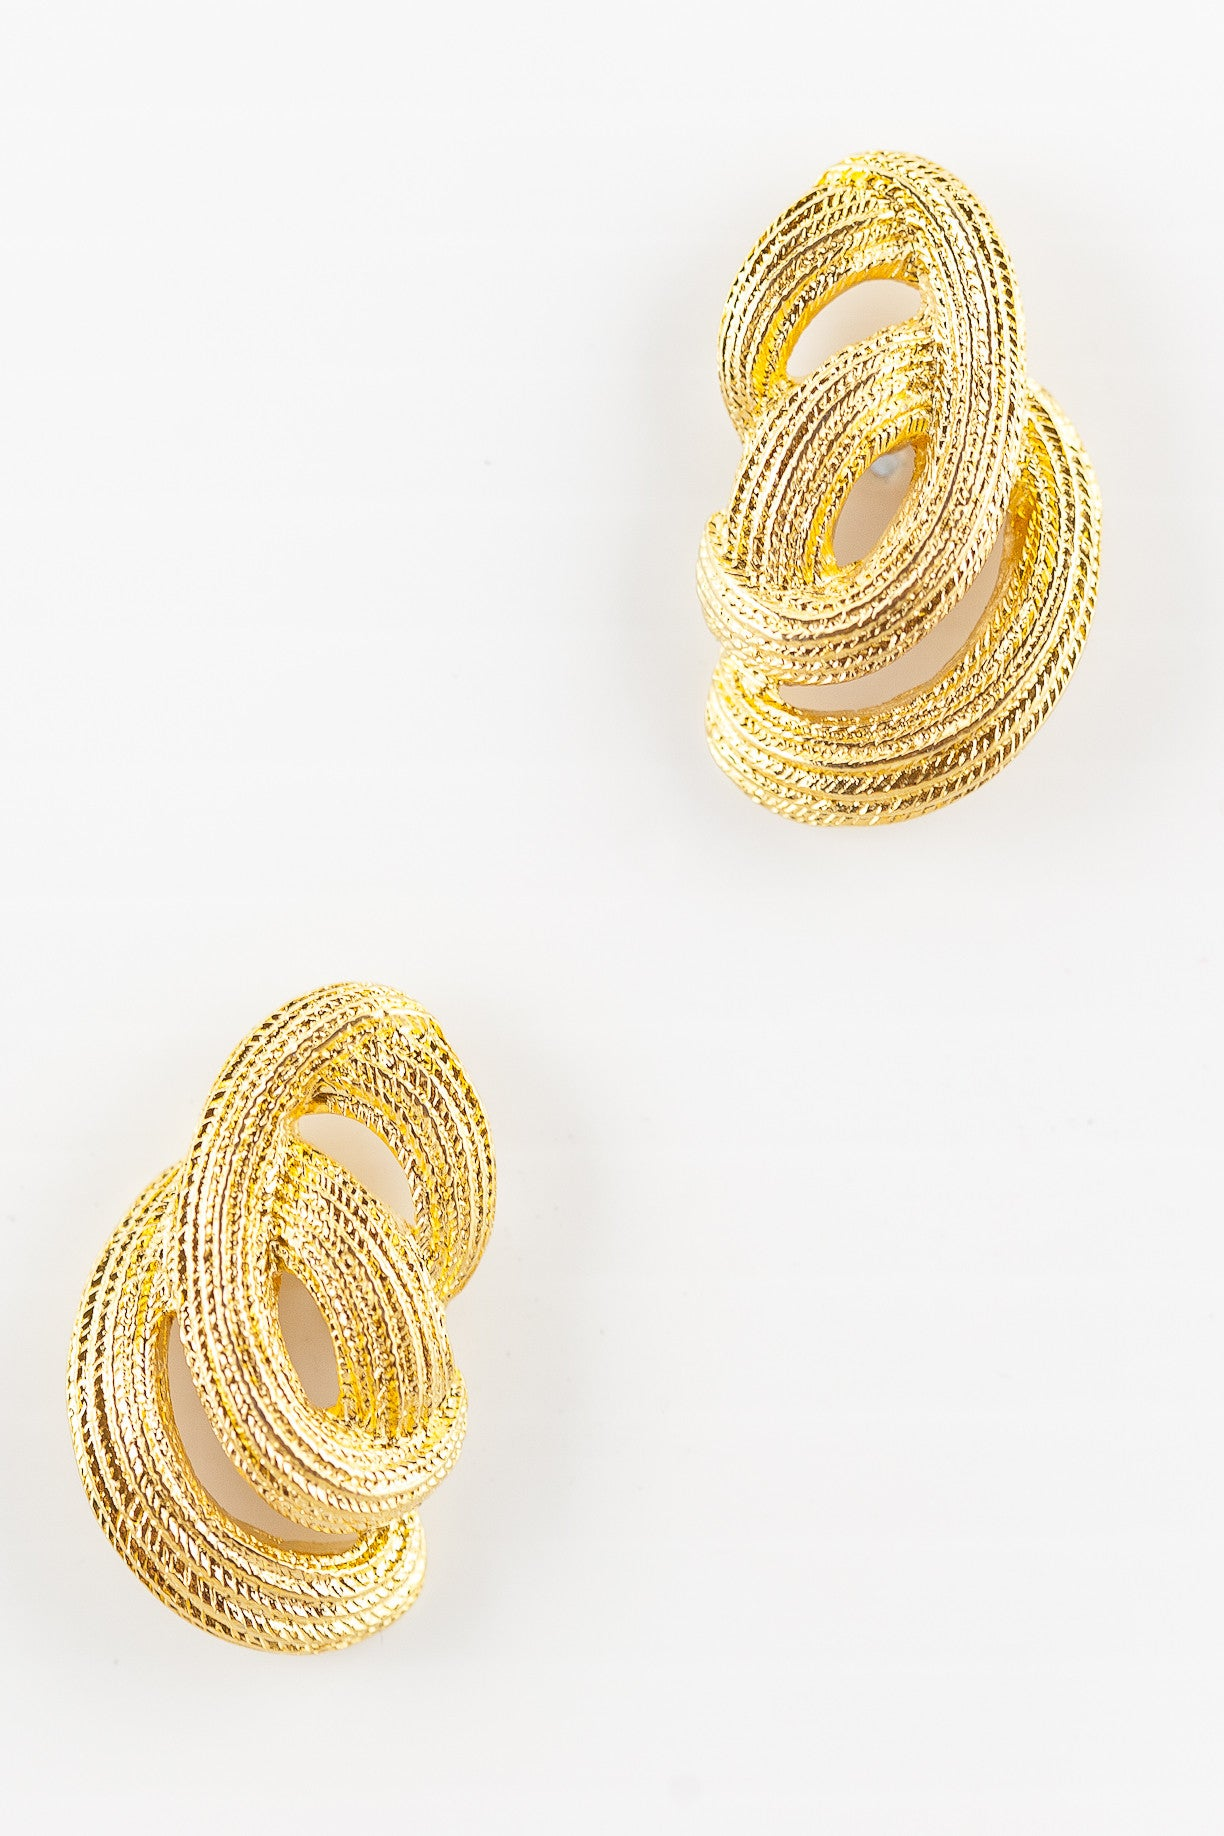 80's__Monet__Etched Swirl Wrap Earrings